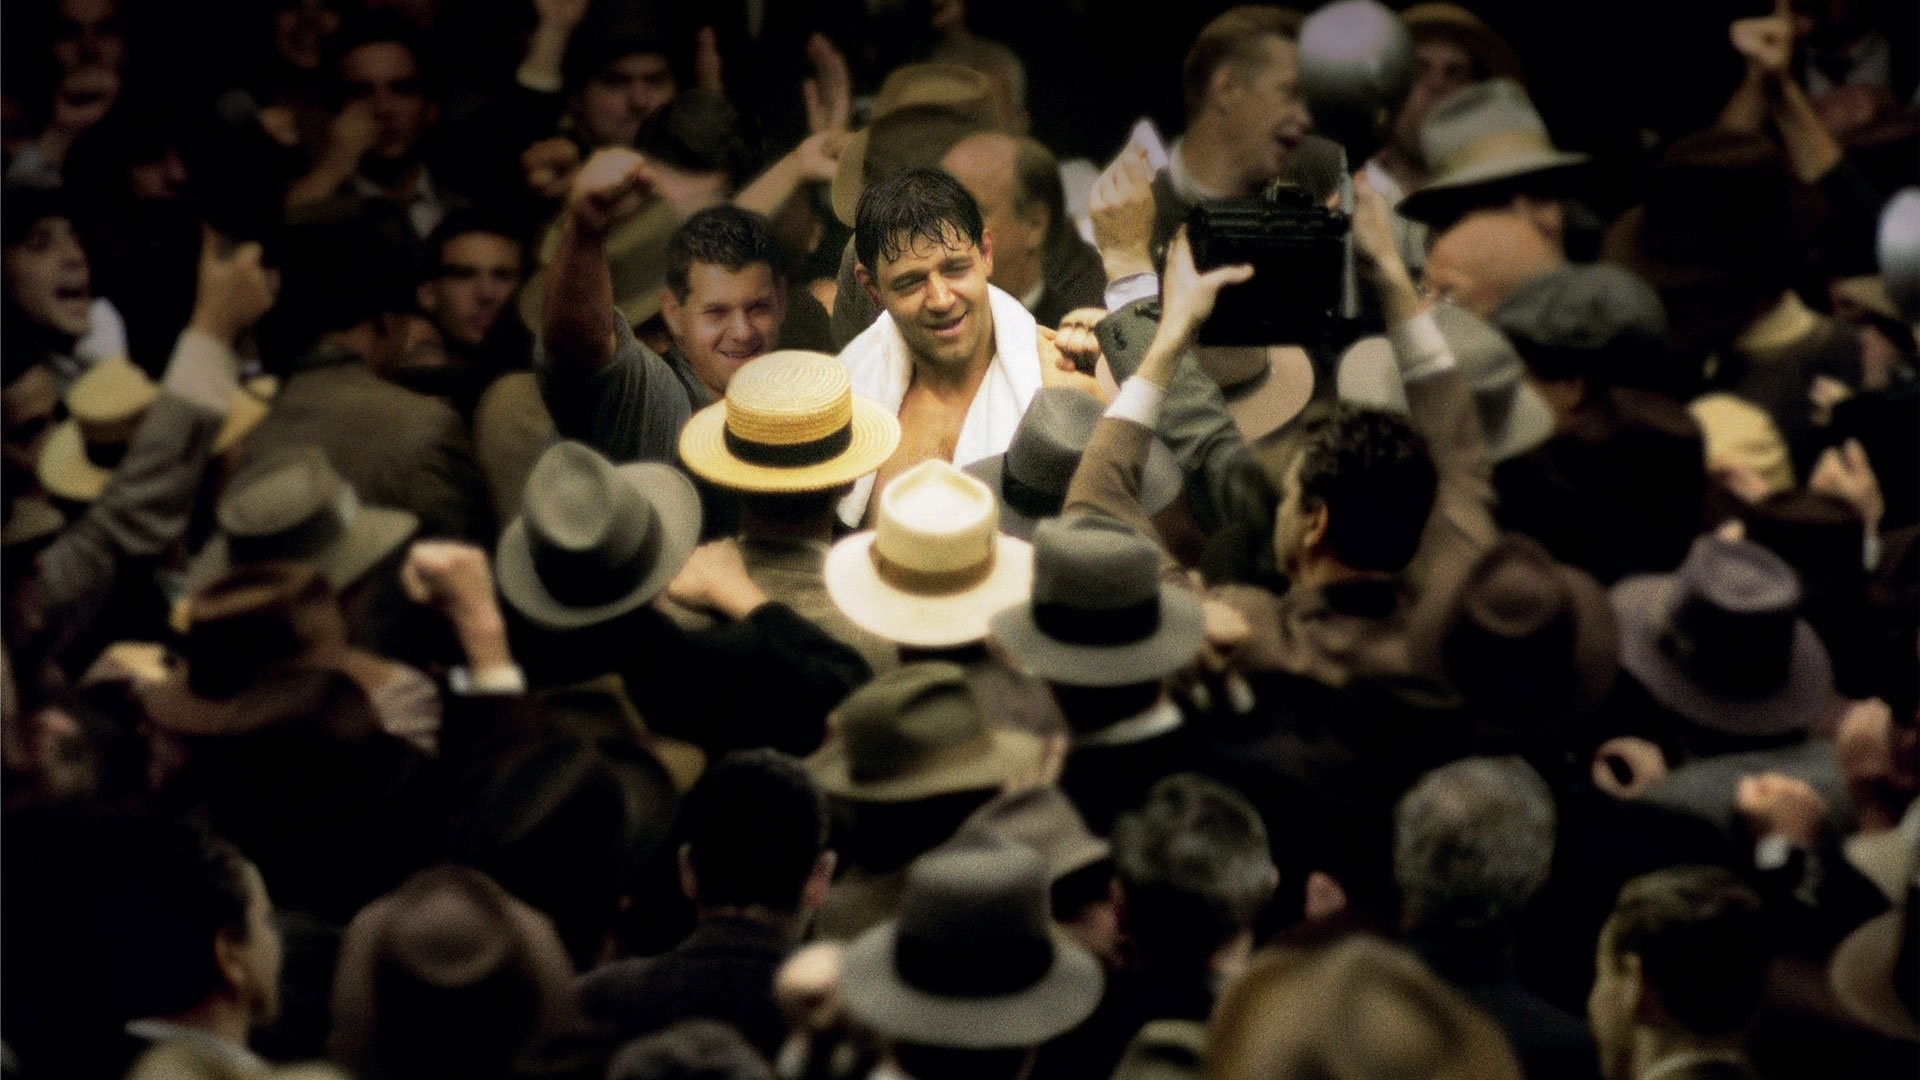 1920x1080 ... russell crowe news, pictures and videos and learn all about cinderella  man, boxer, russell crowe from wallpapers4u.org, your wallpaper news source.